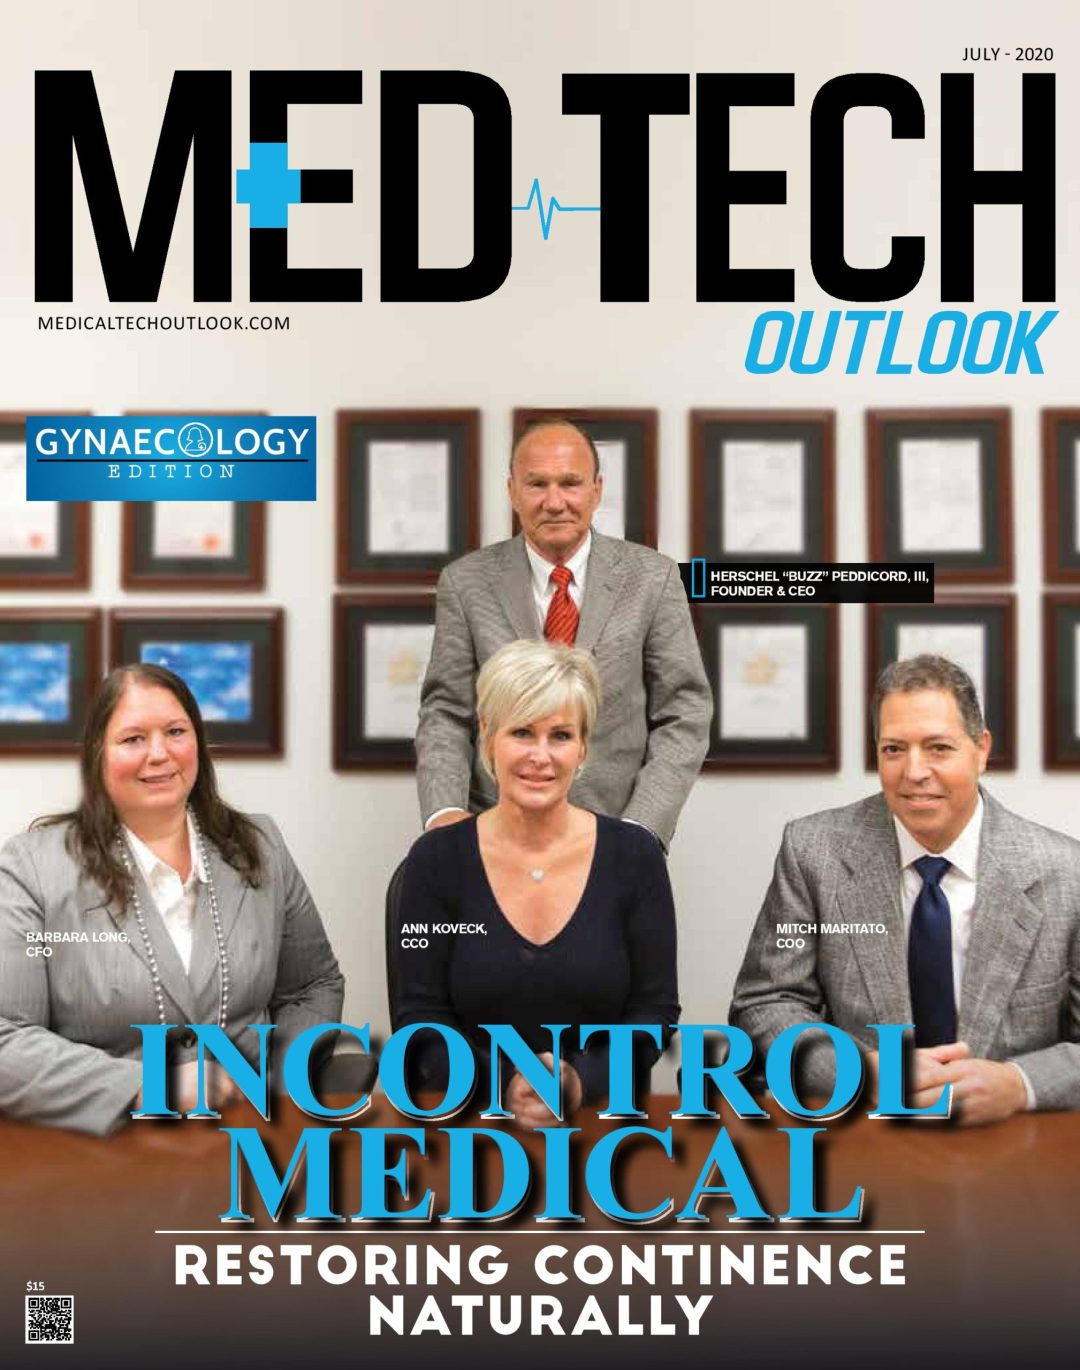 MedTech Cover Incontrol Medical Restoring Continence Naturally